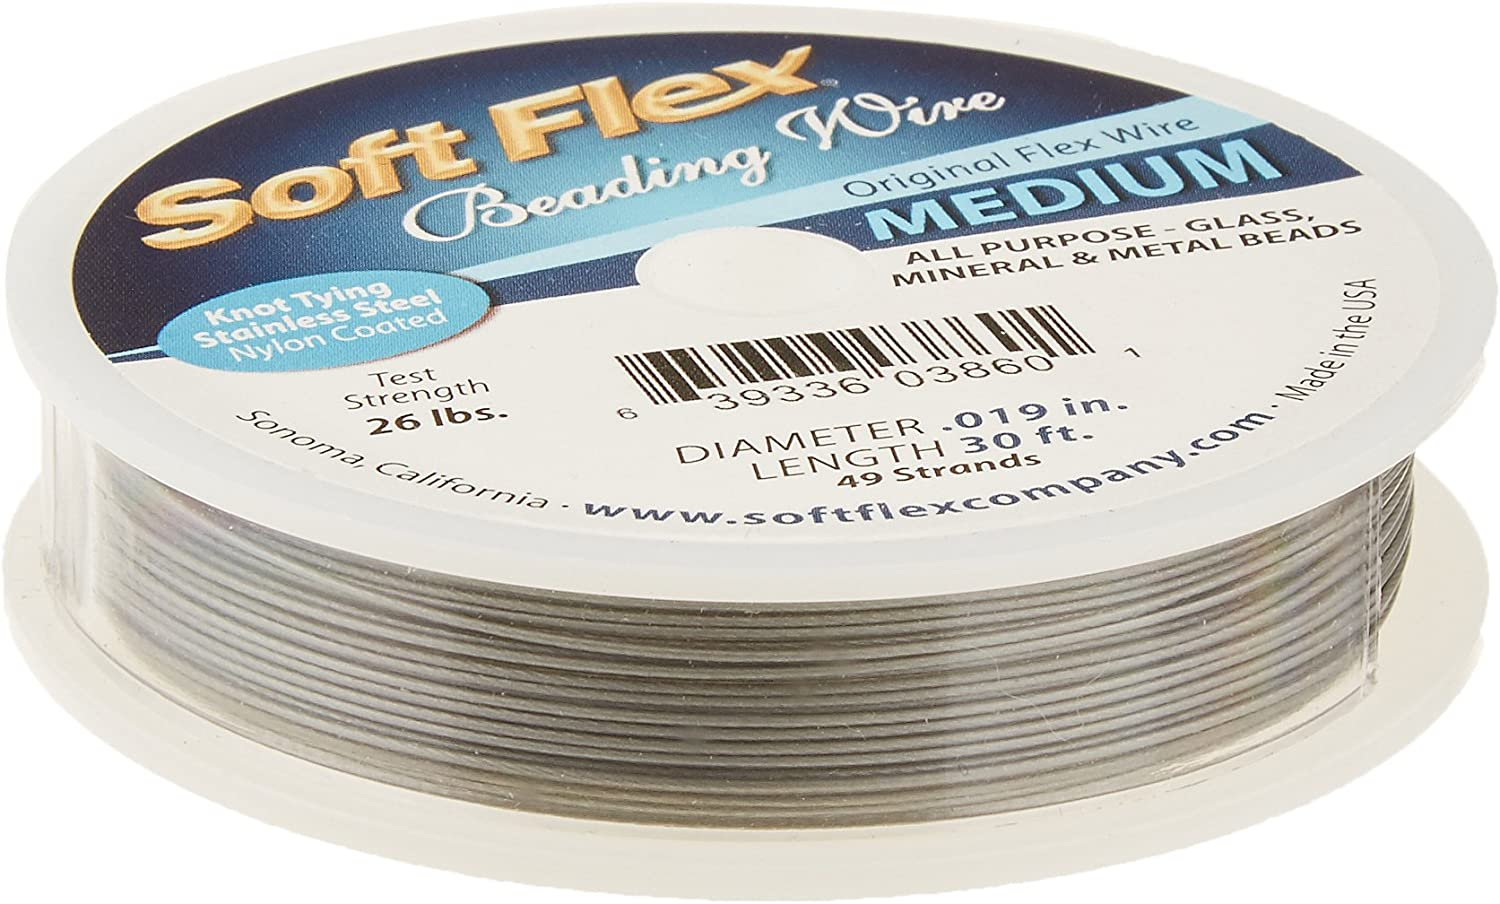 Soft Flex .019 in 30 ft Best Beading Wire 49 Strands